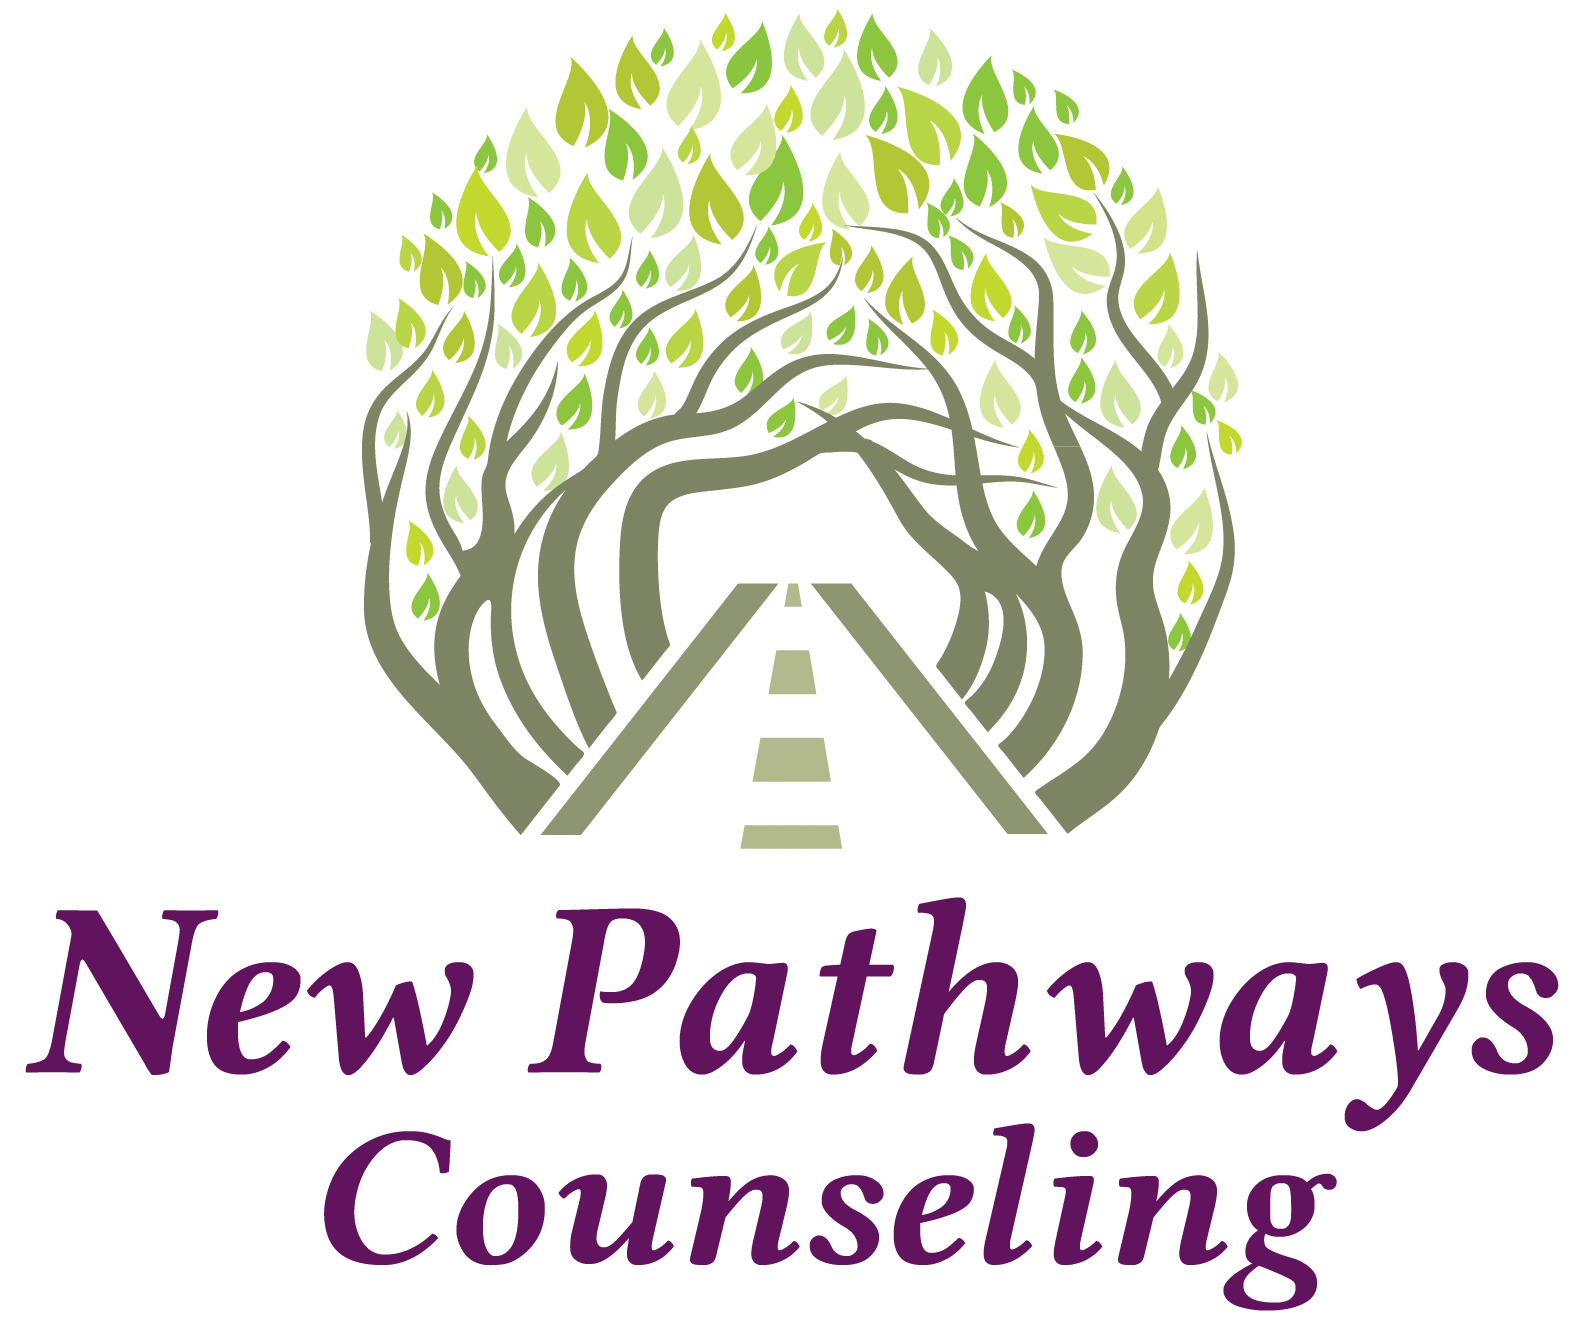 http://newpathwaystx.com/wp-content/uploads/2018/08/NPW_Master-Logo.png